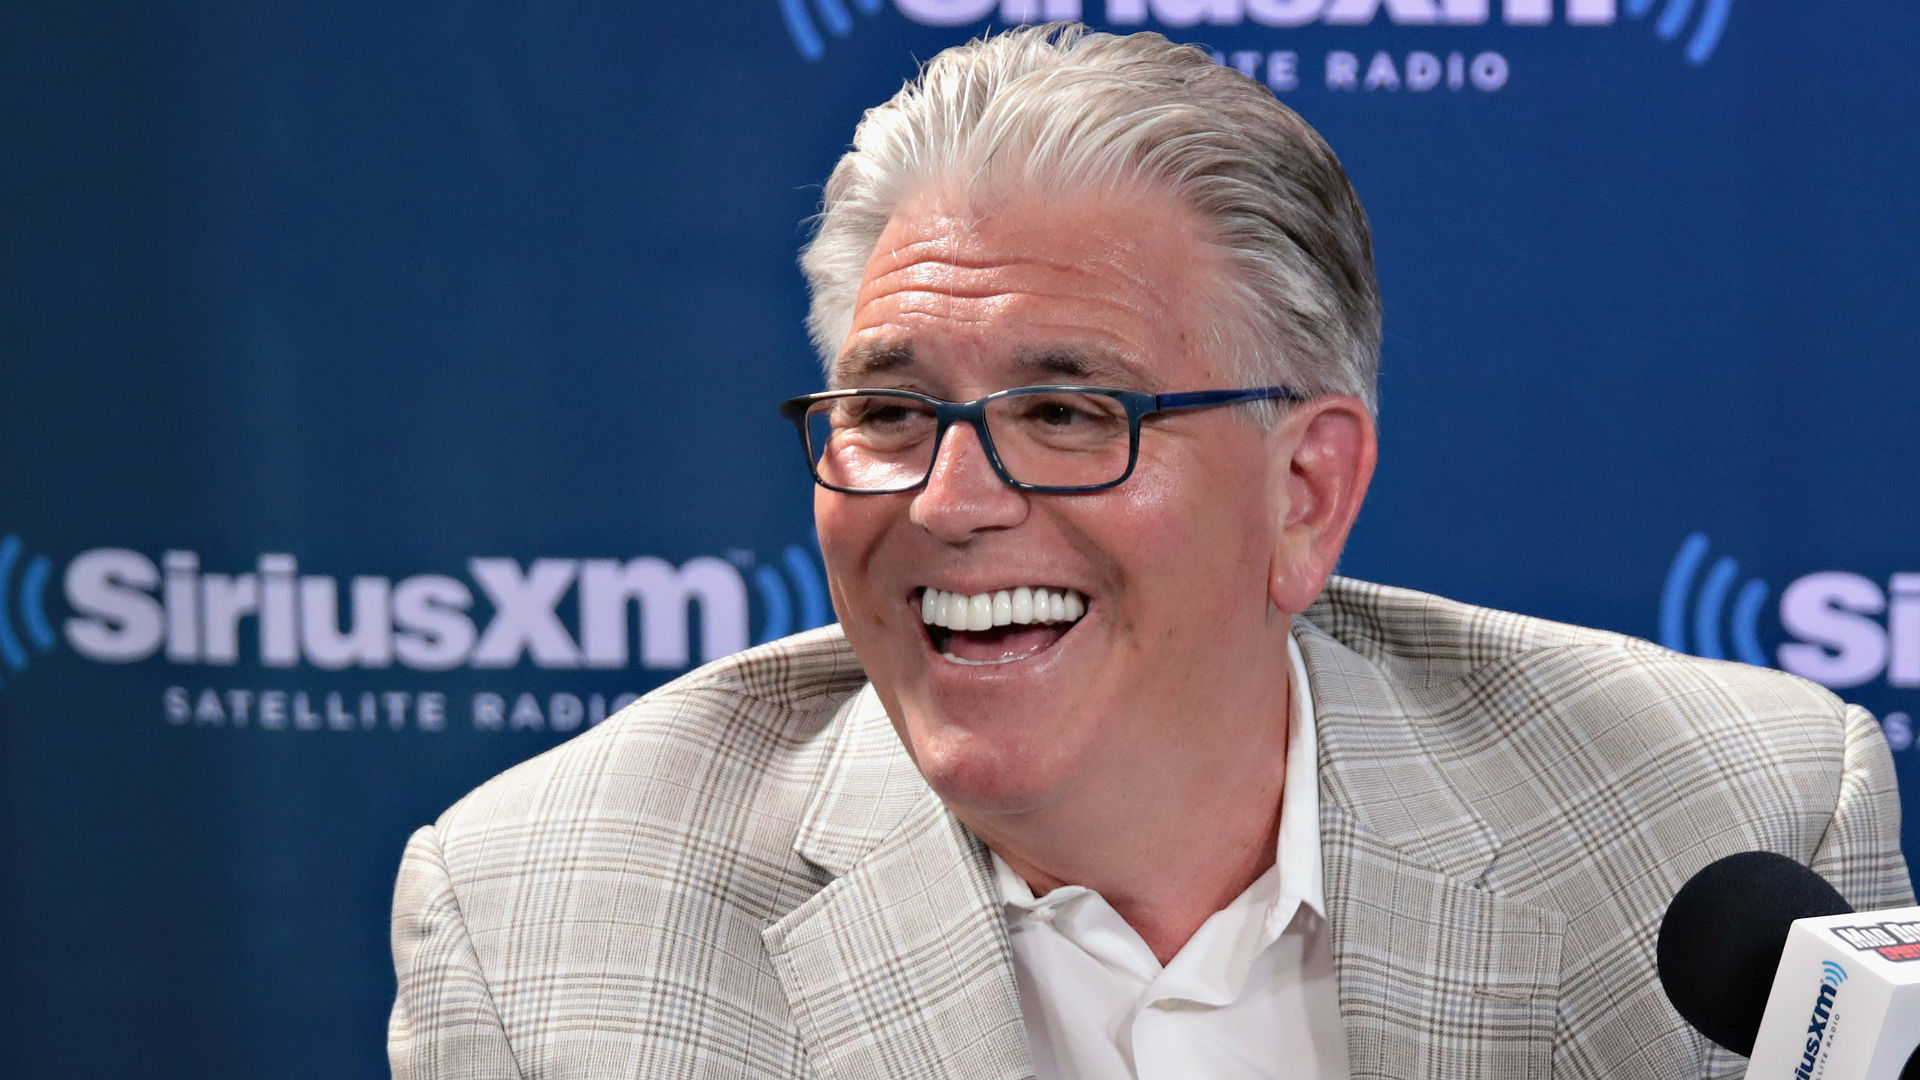 Mike Francesa planning return to NY  radio station WFAN, report says